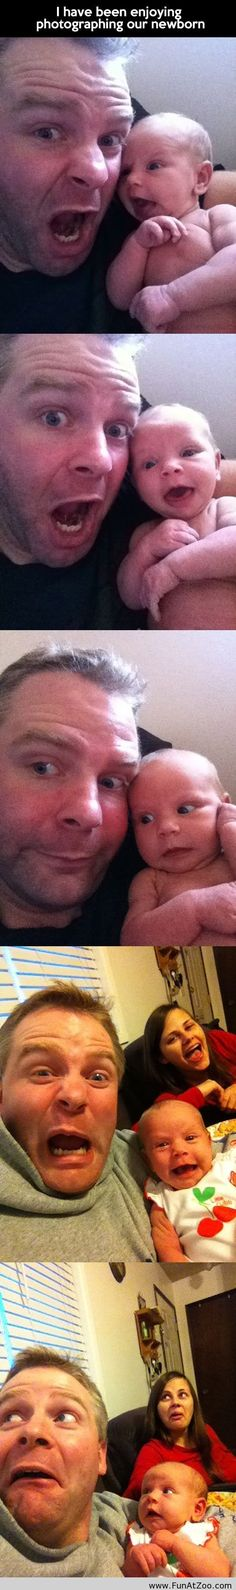 Funny pictures of a newborn baby - Funny Picture